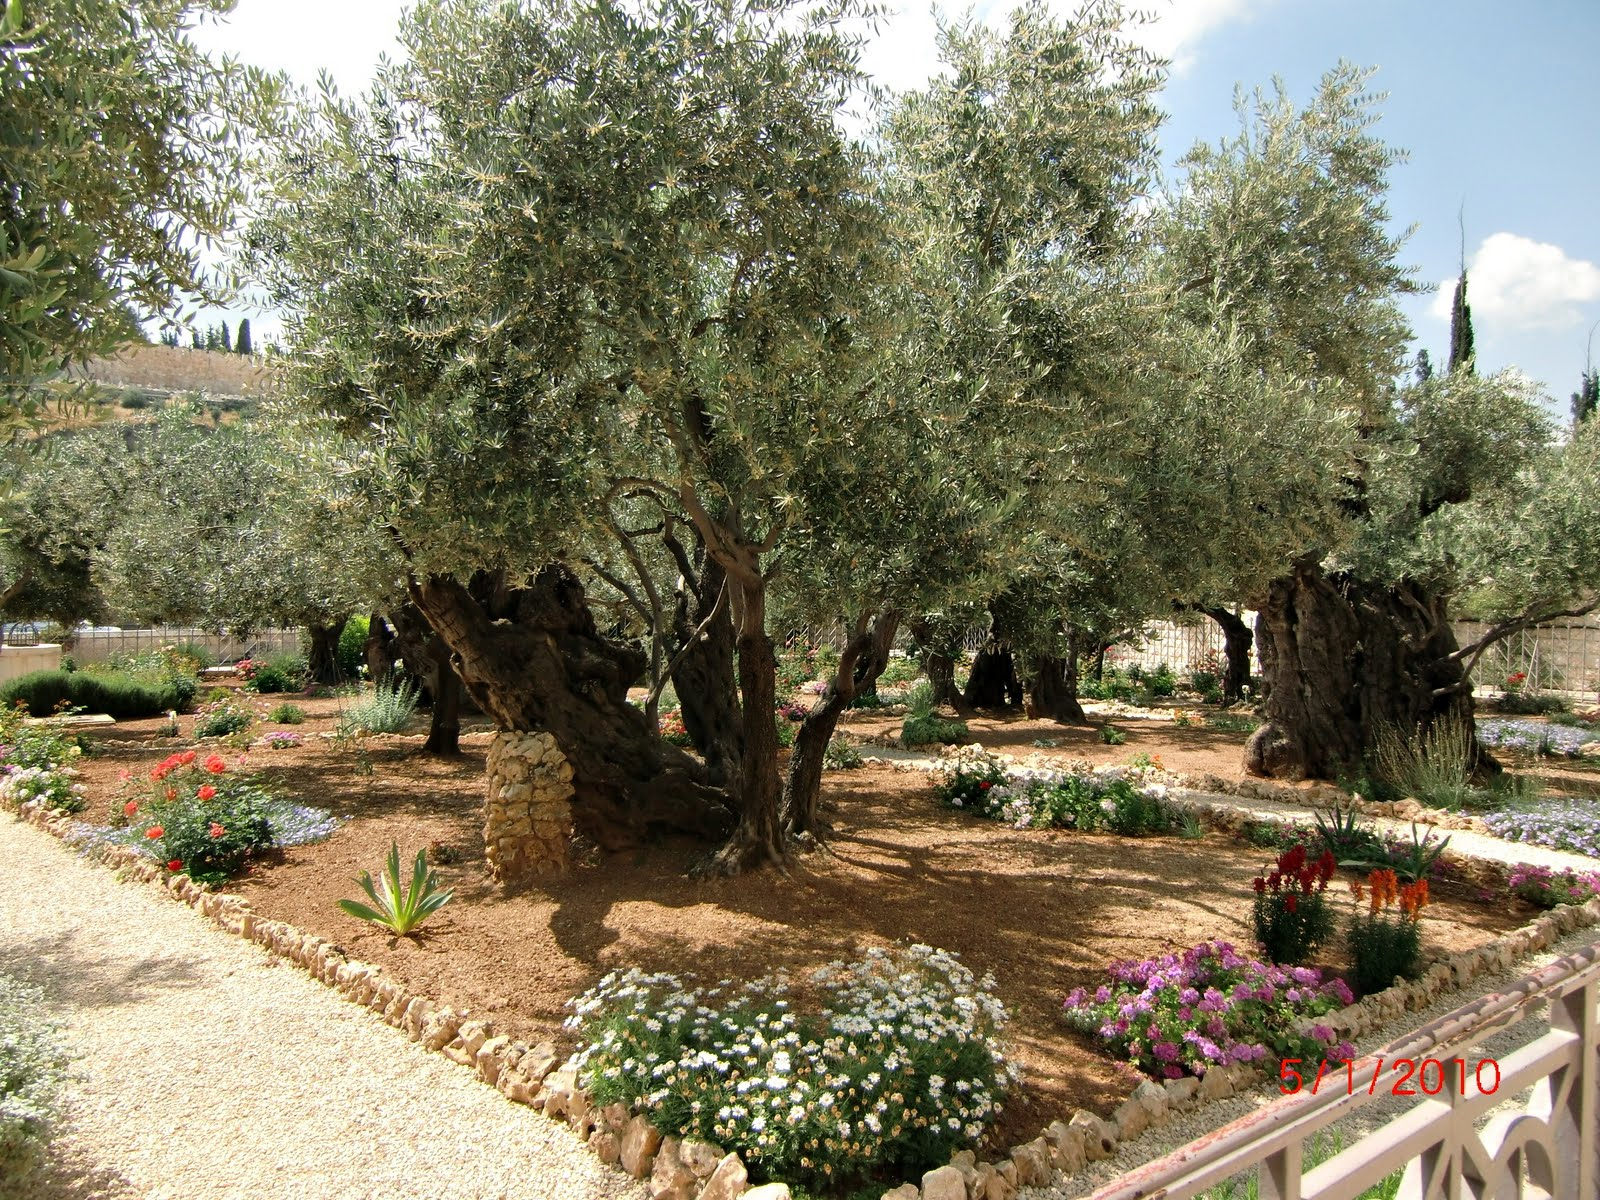 A Day In the Life of Us: The Garden of Gethsemane, Part 1